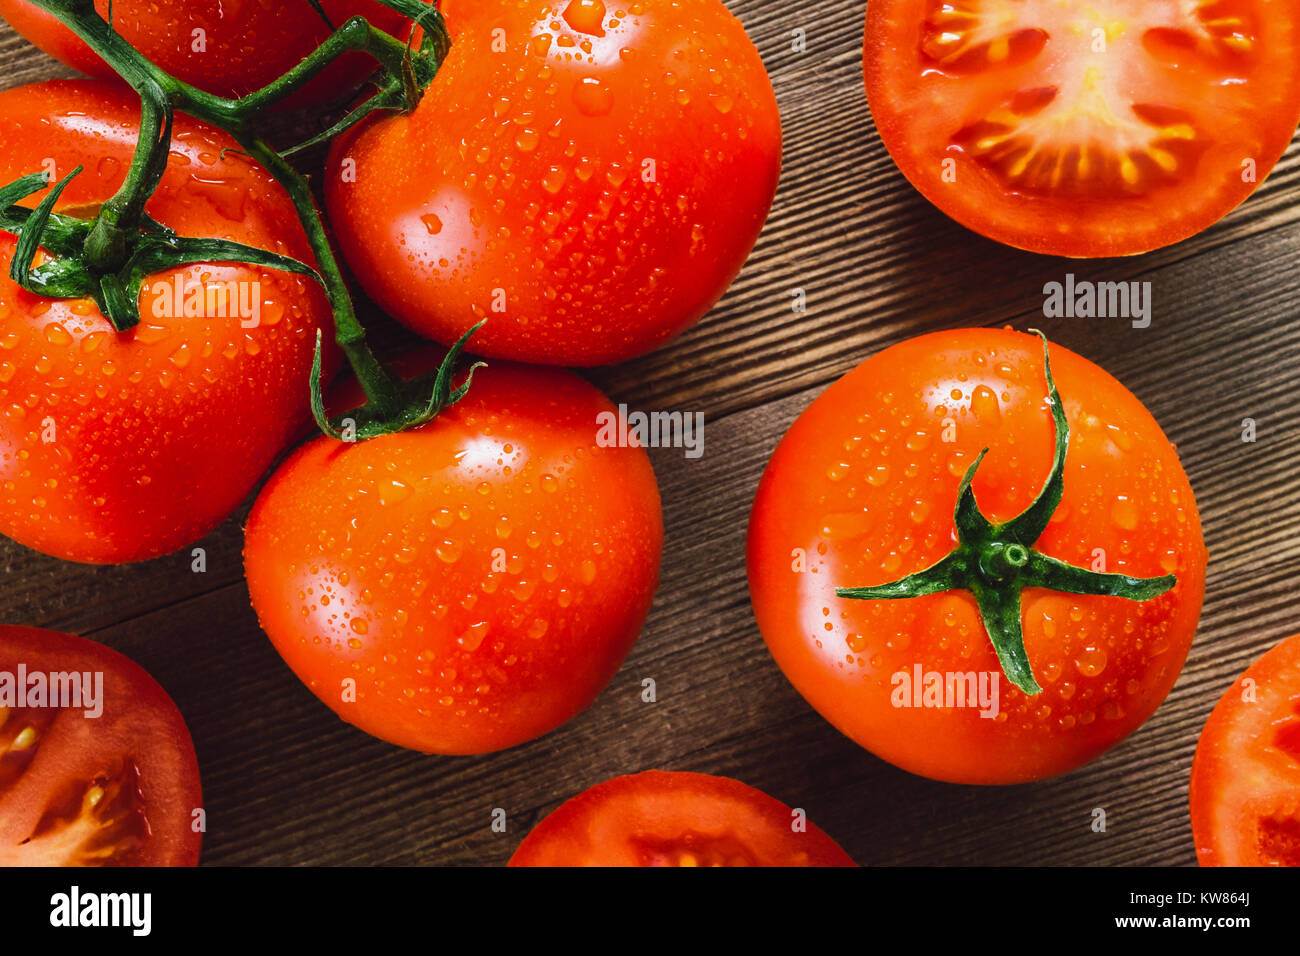 Freshly Washed Tomatoes on Cedar Table - Stock Image